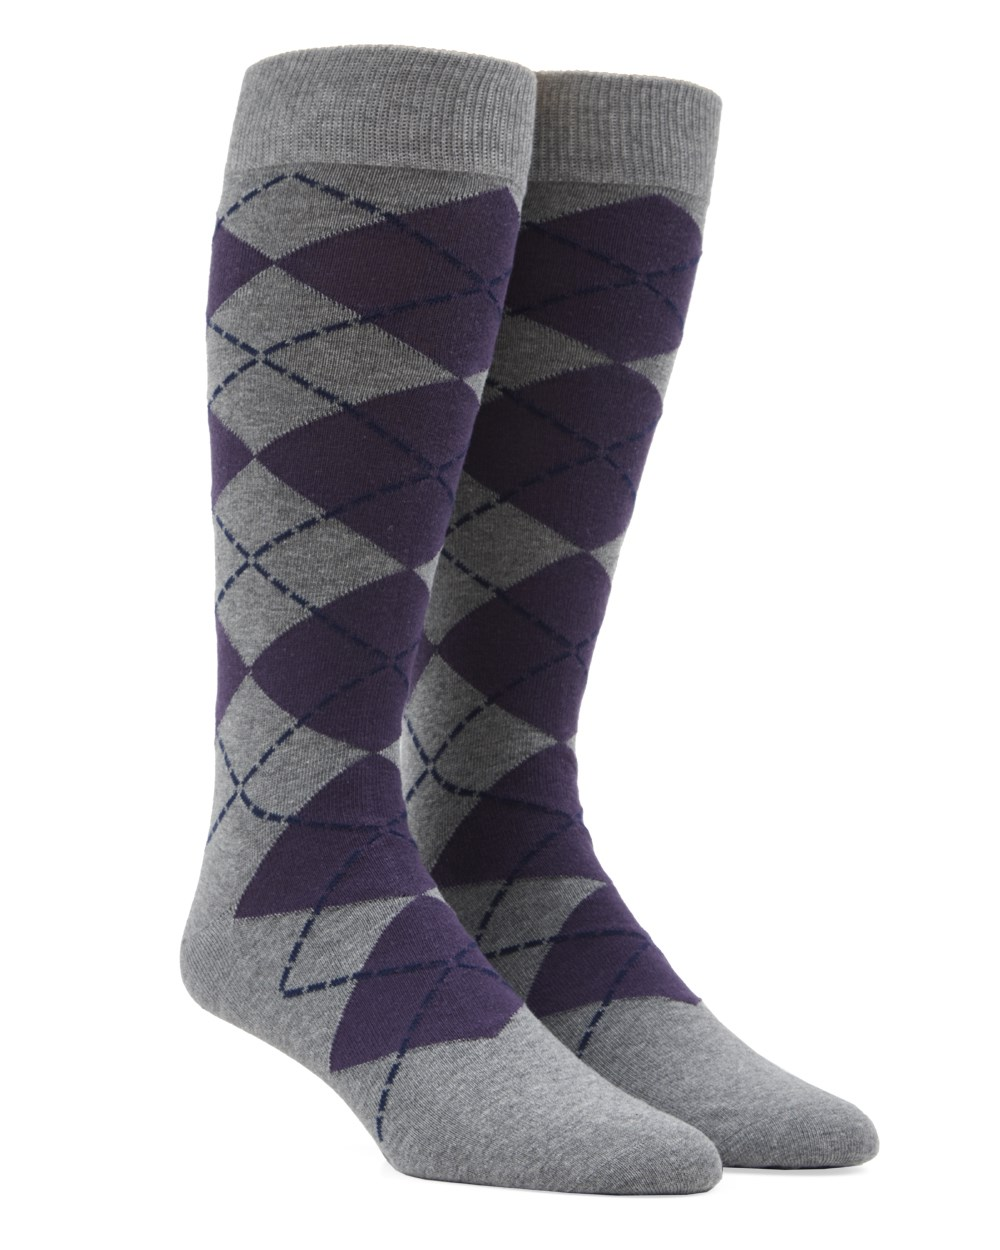 New Argyle - Purple - Men's Shoe Size 7-12 - Socks